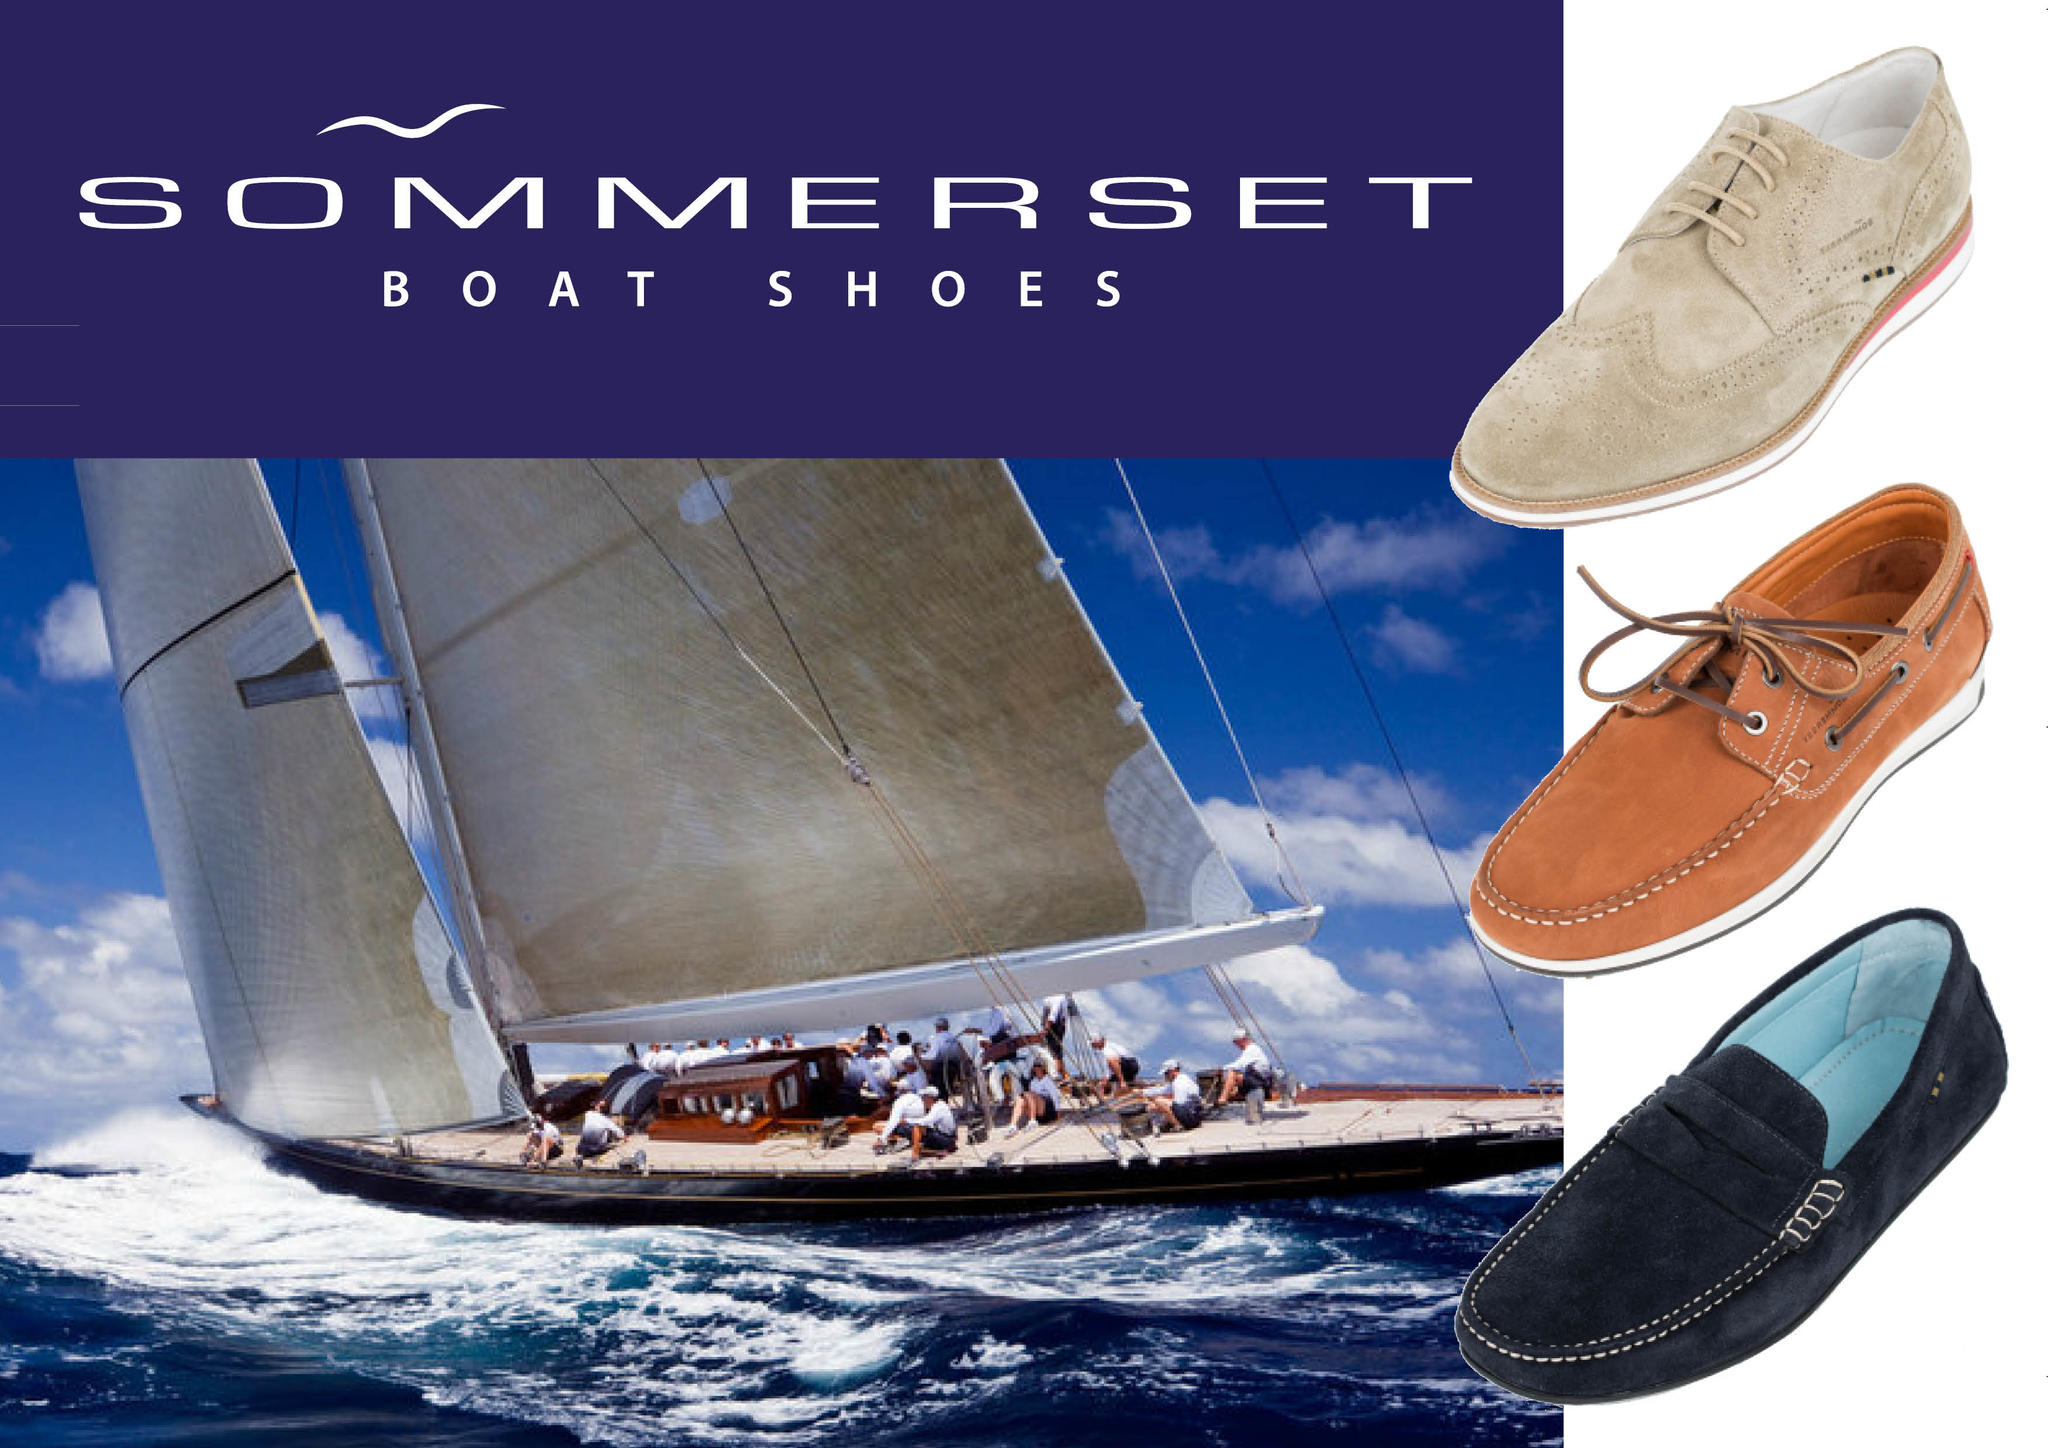 Sommerset boat shoes